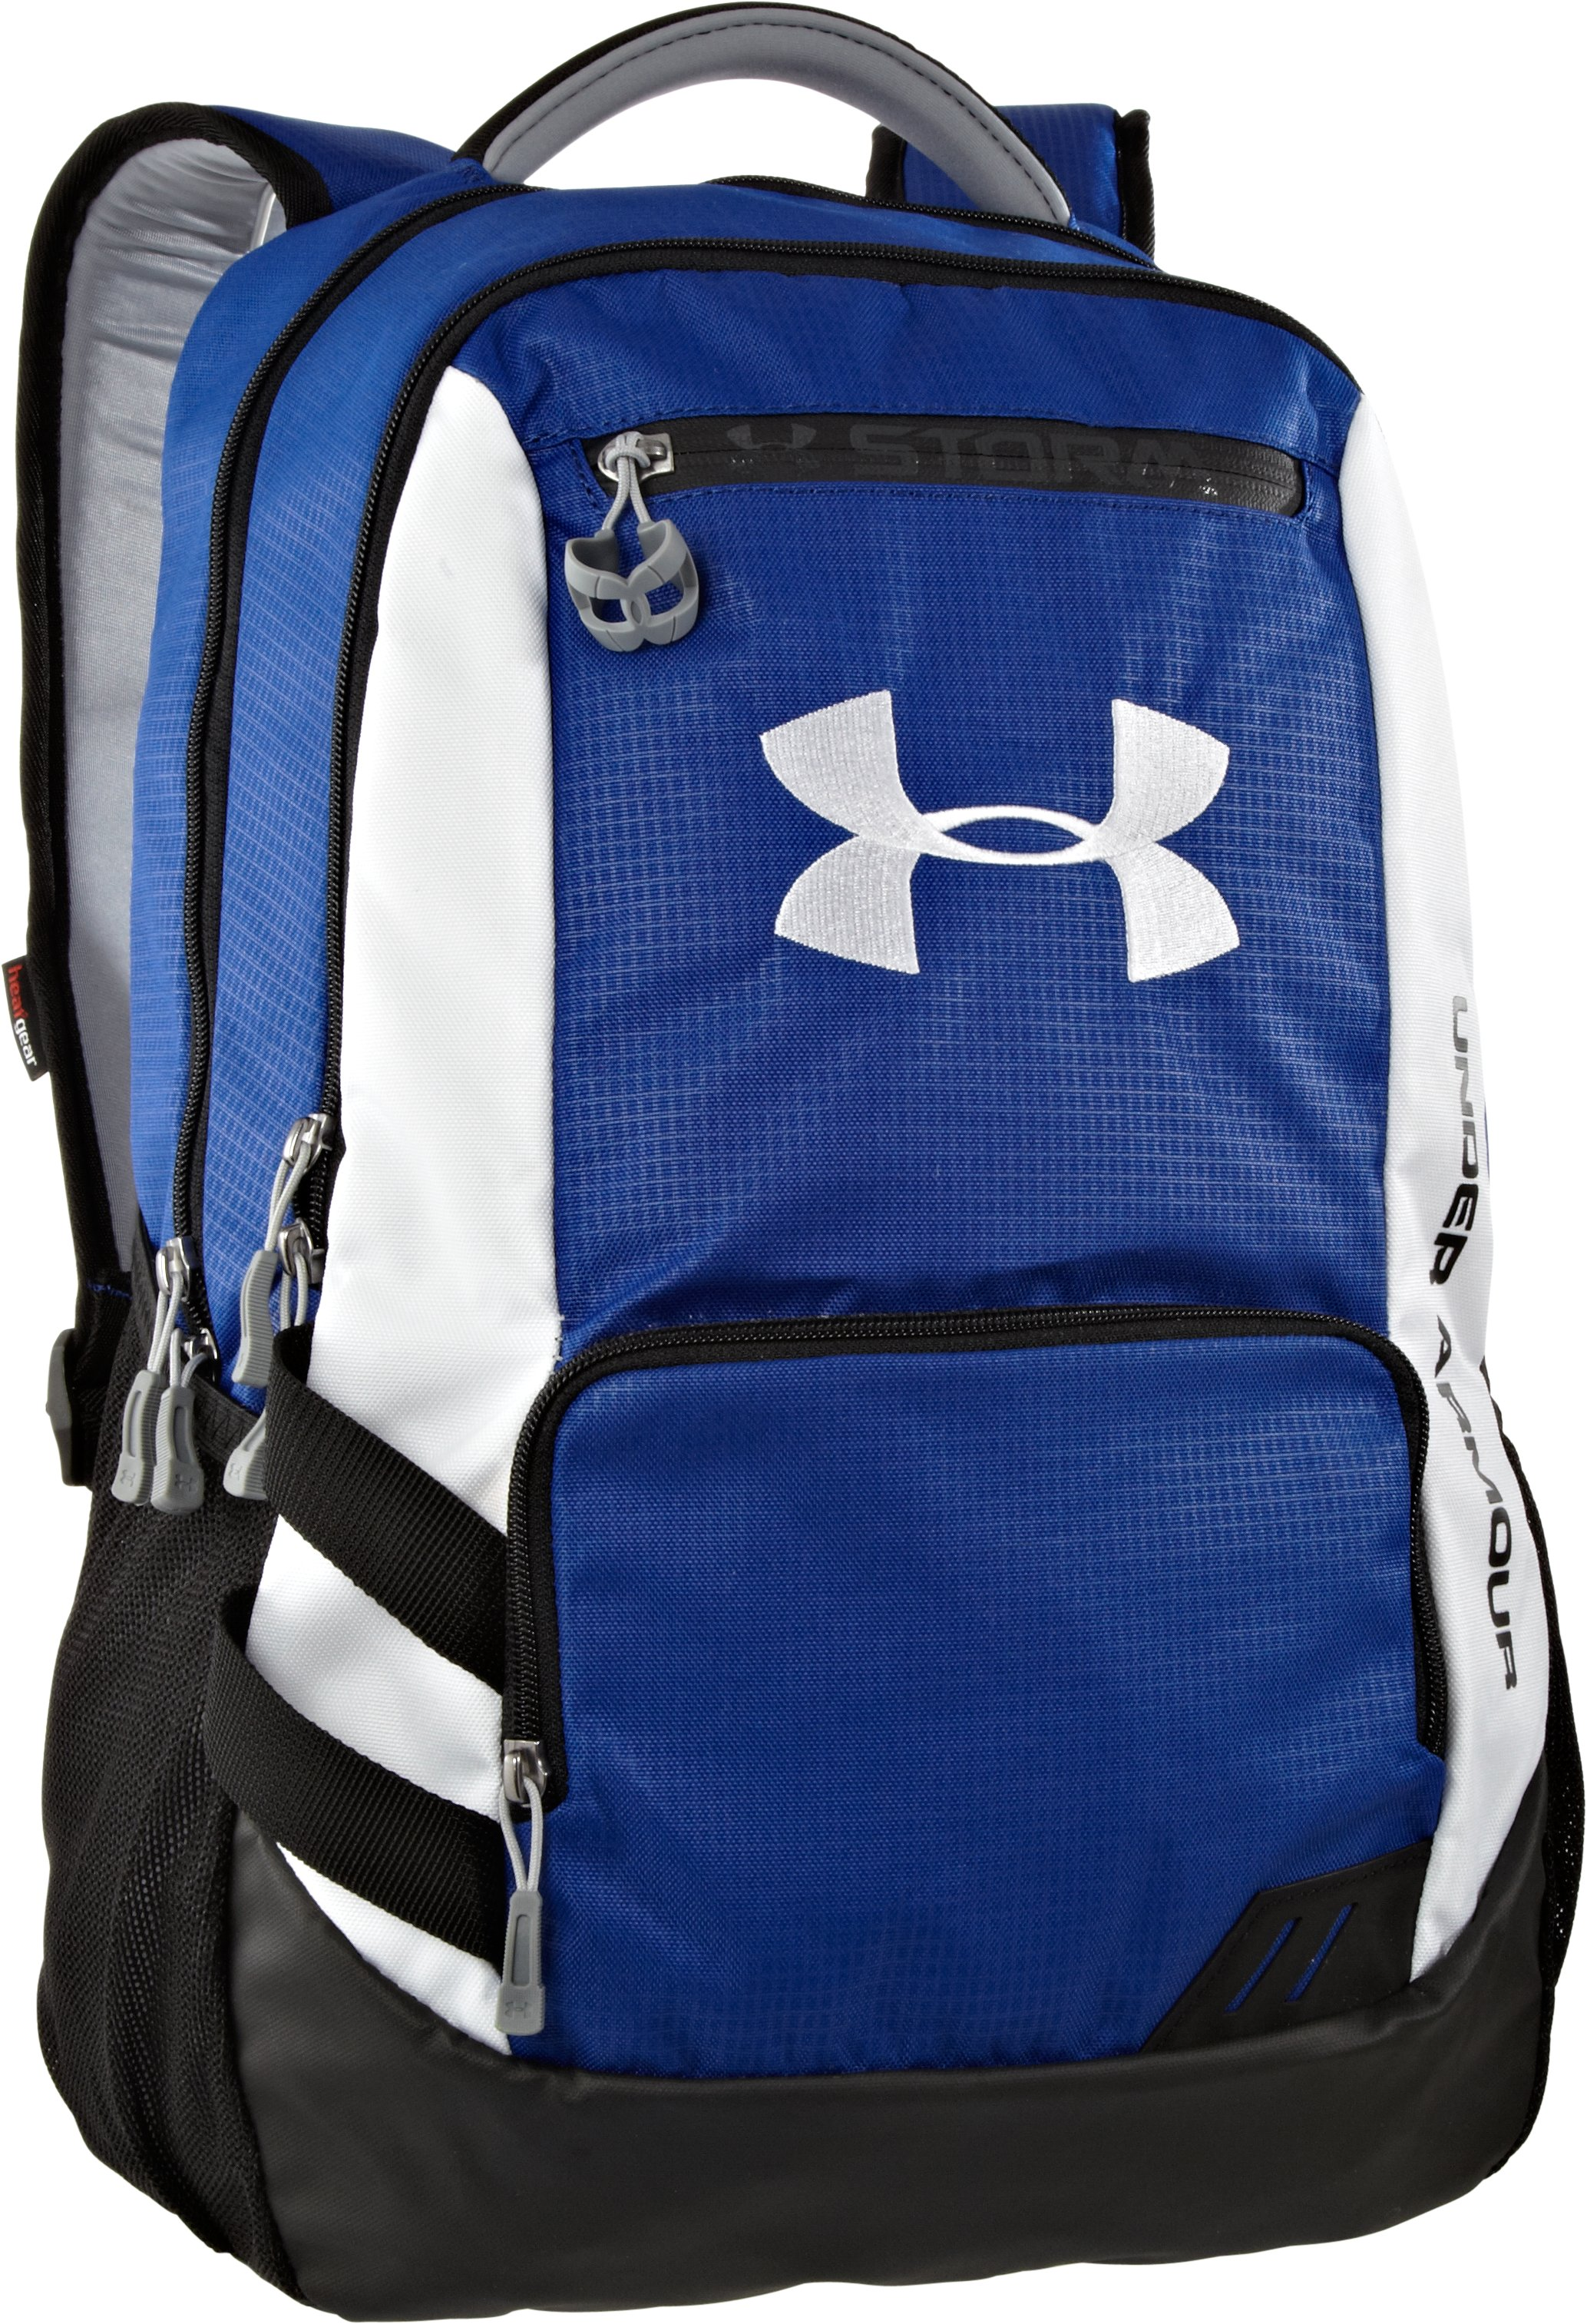 UA Hustle Storm Backpack, Royal